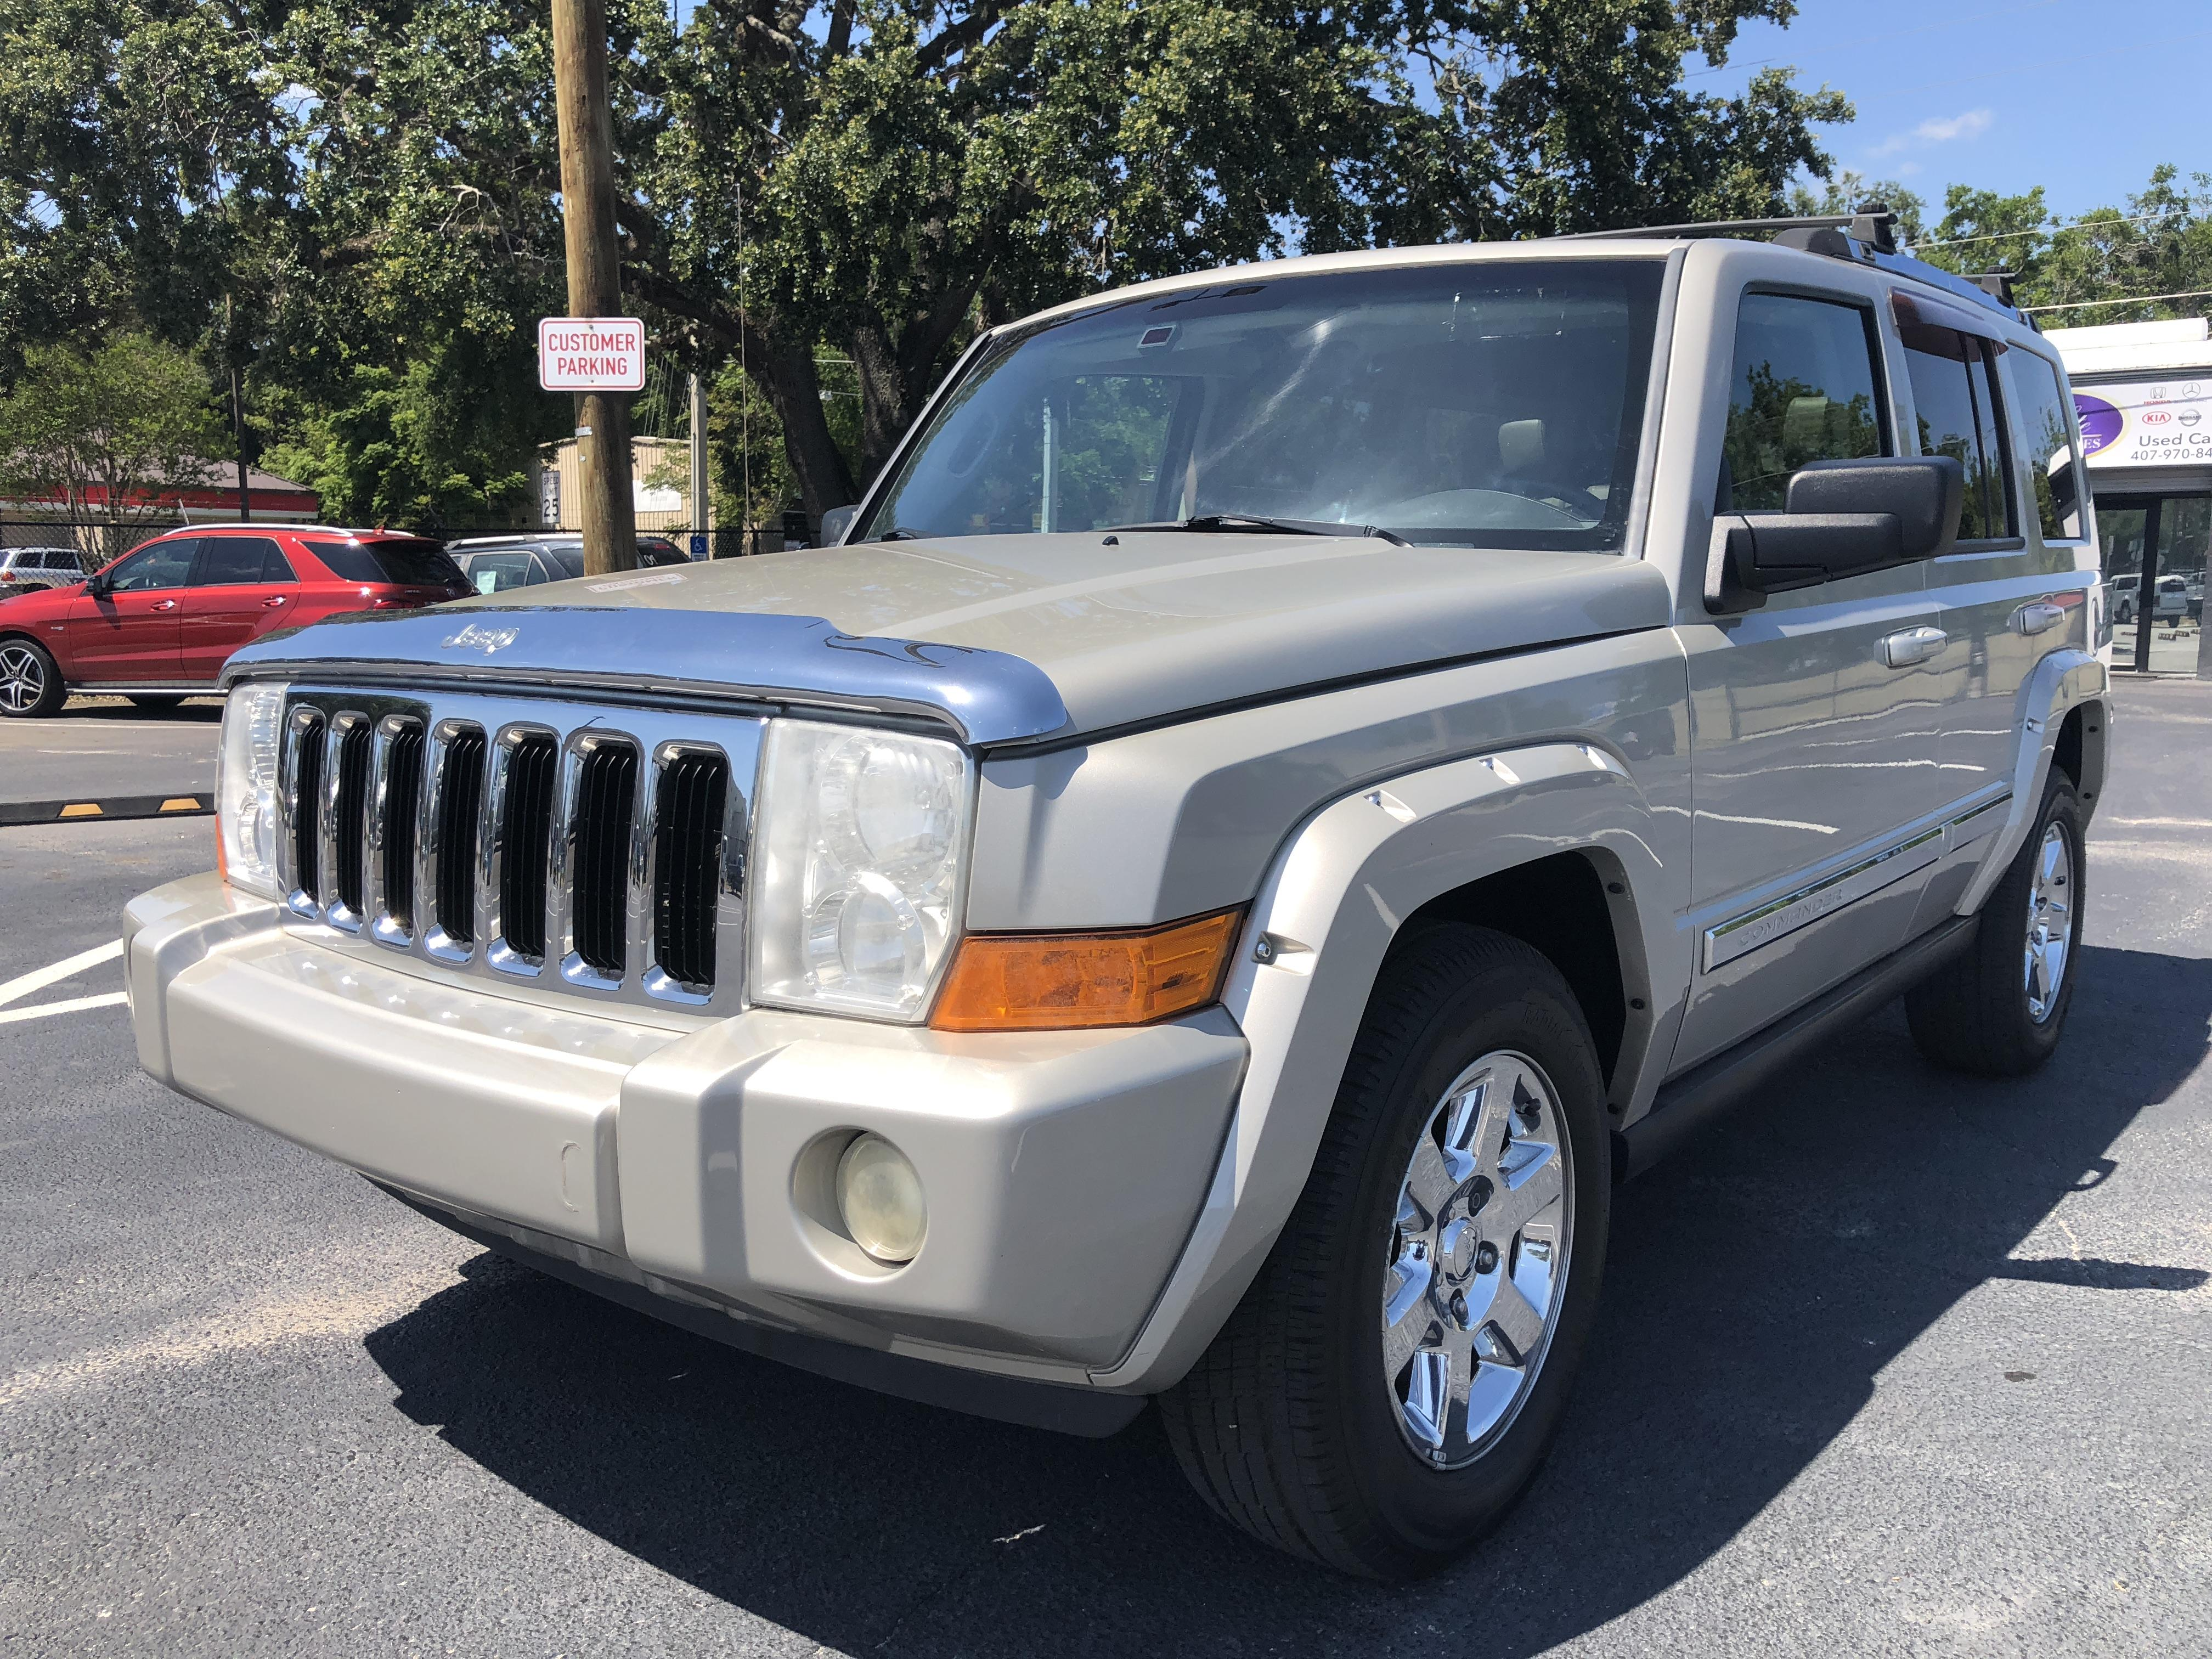 2008 Jeep Commander For Sale In Sanford Fl Cargurus 2006 Fuel Filter 2007 Limited Used Cars Orlando 32839